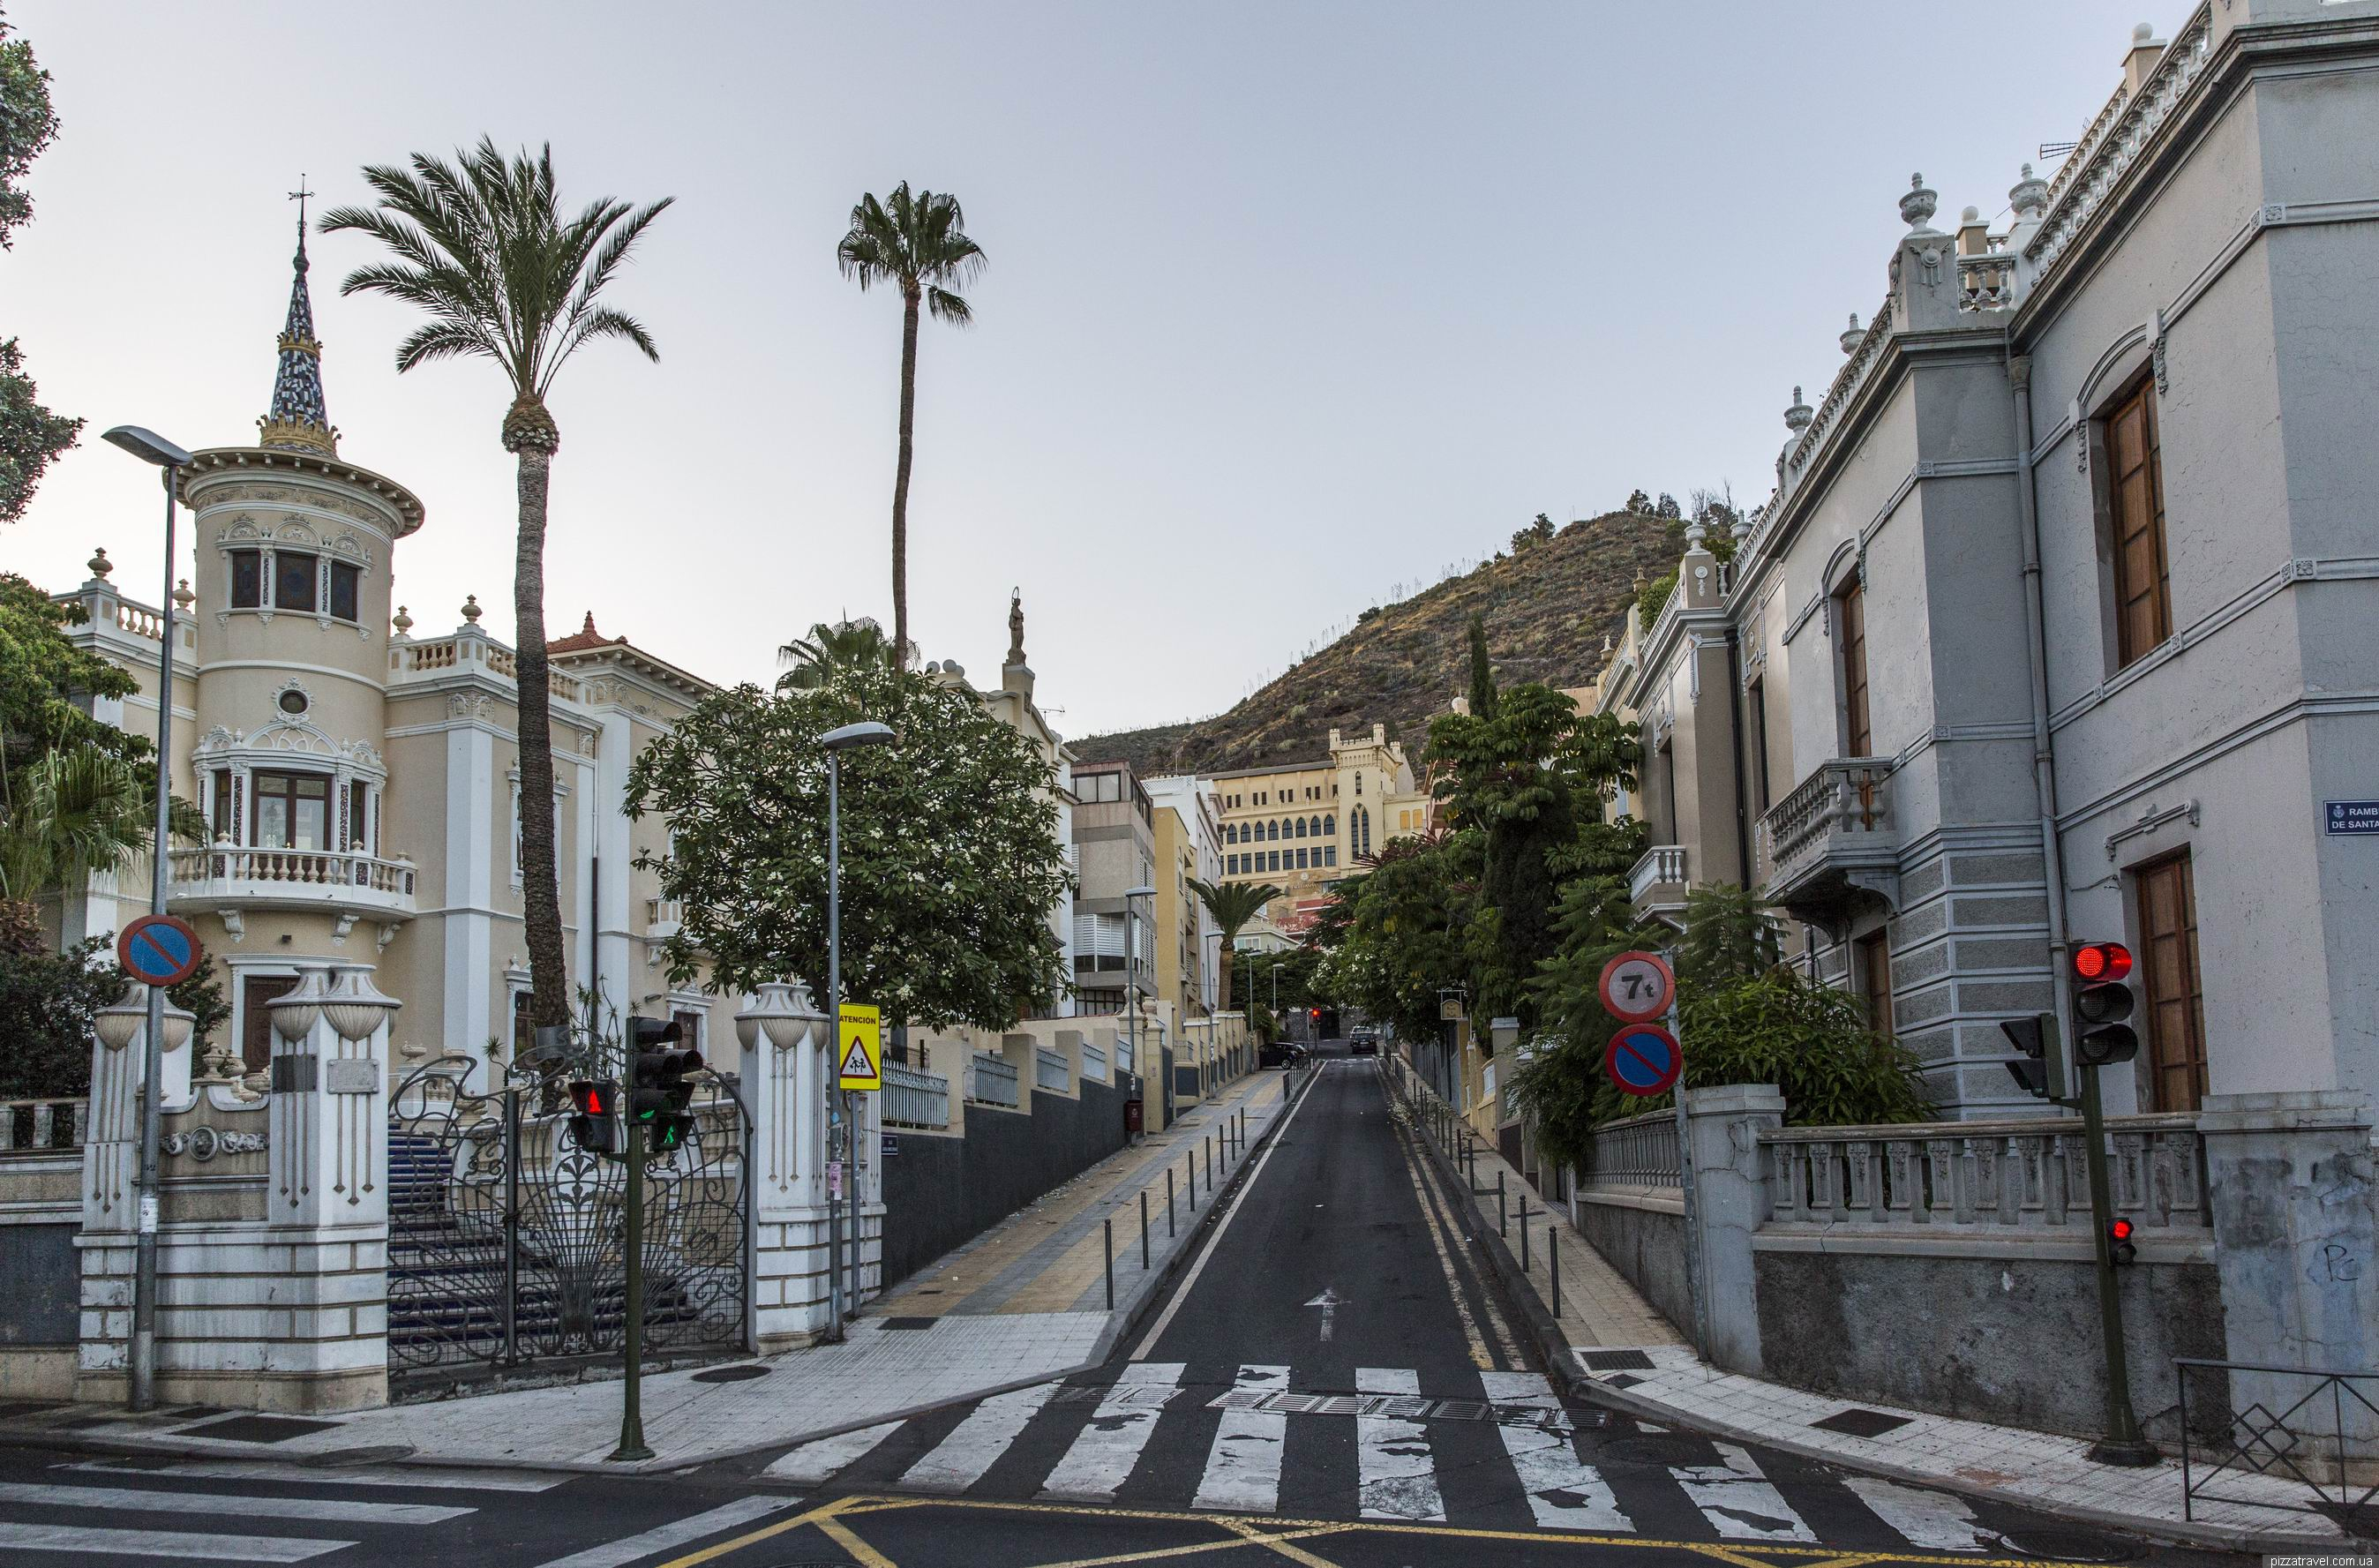 Santa cruz de tenerife spain blog about interesting places - Atico santa cruz de tenerife ...